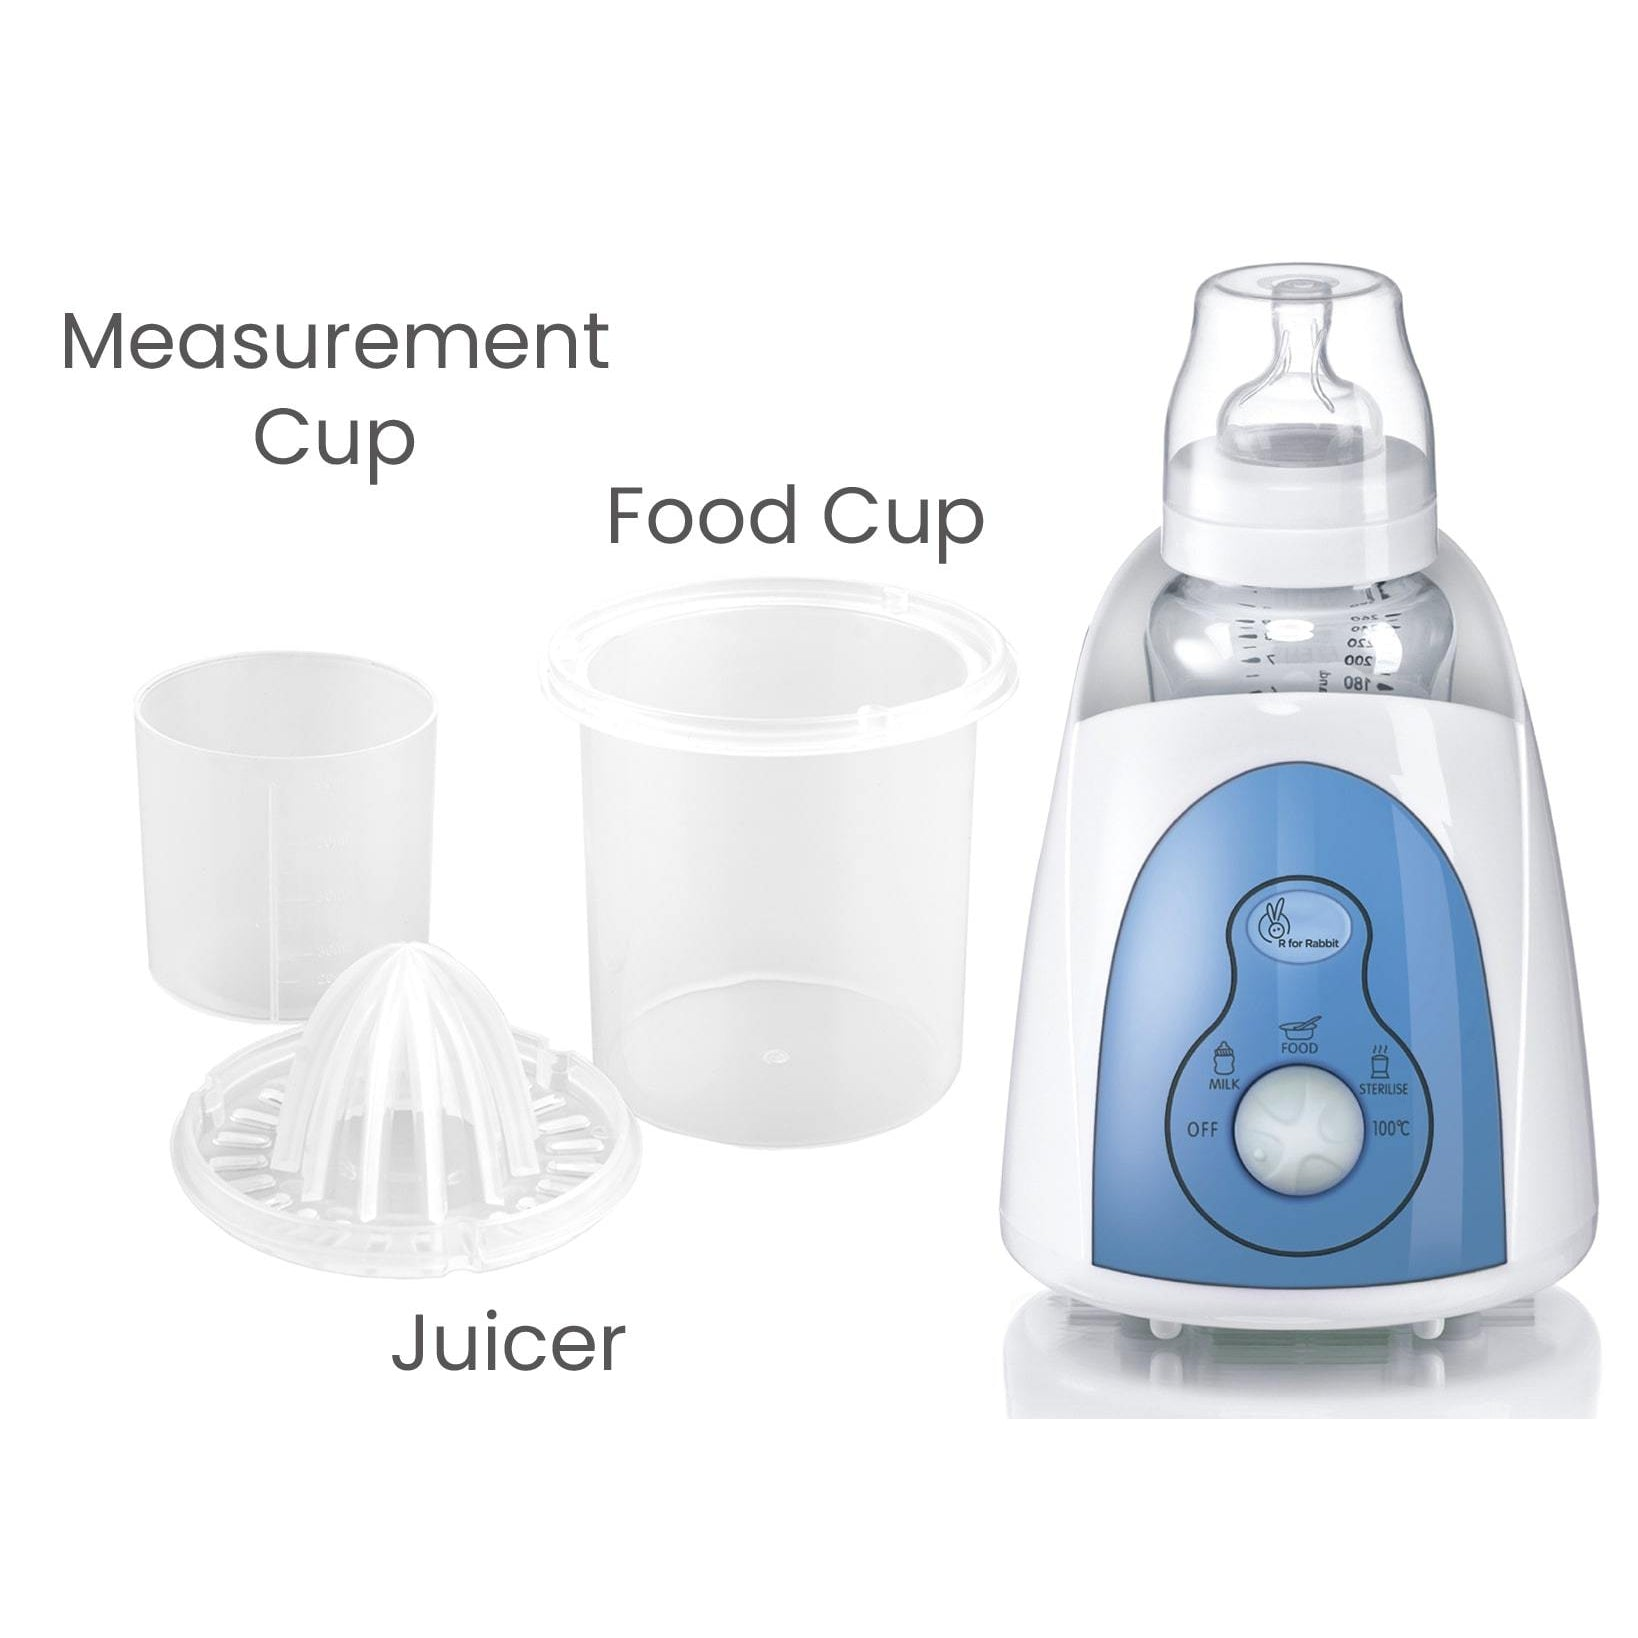 R for Rabbit Hot Bot - 5 in 1 Multi-Functional Baby Bottle Warmer